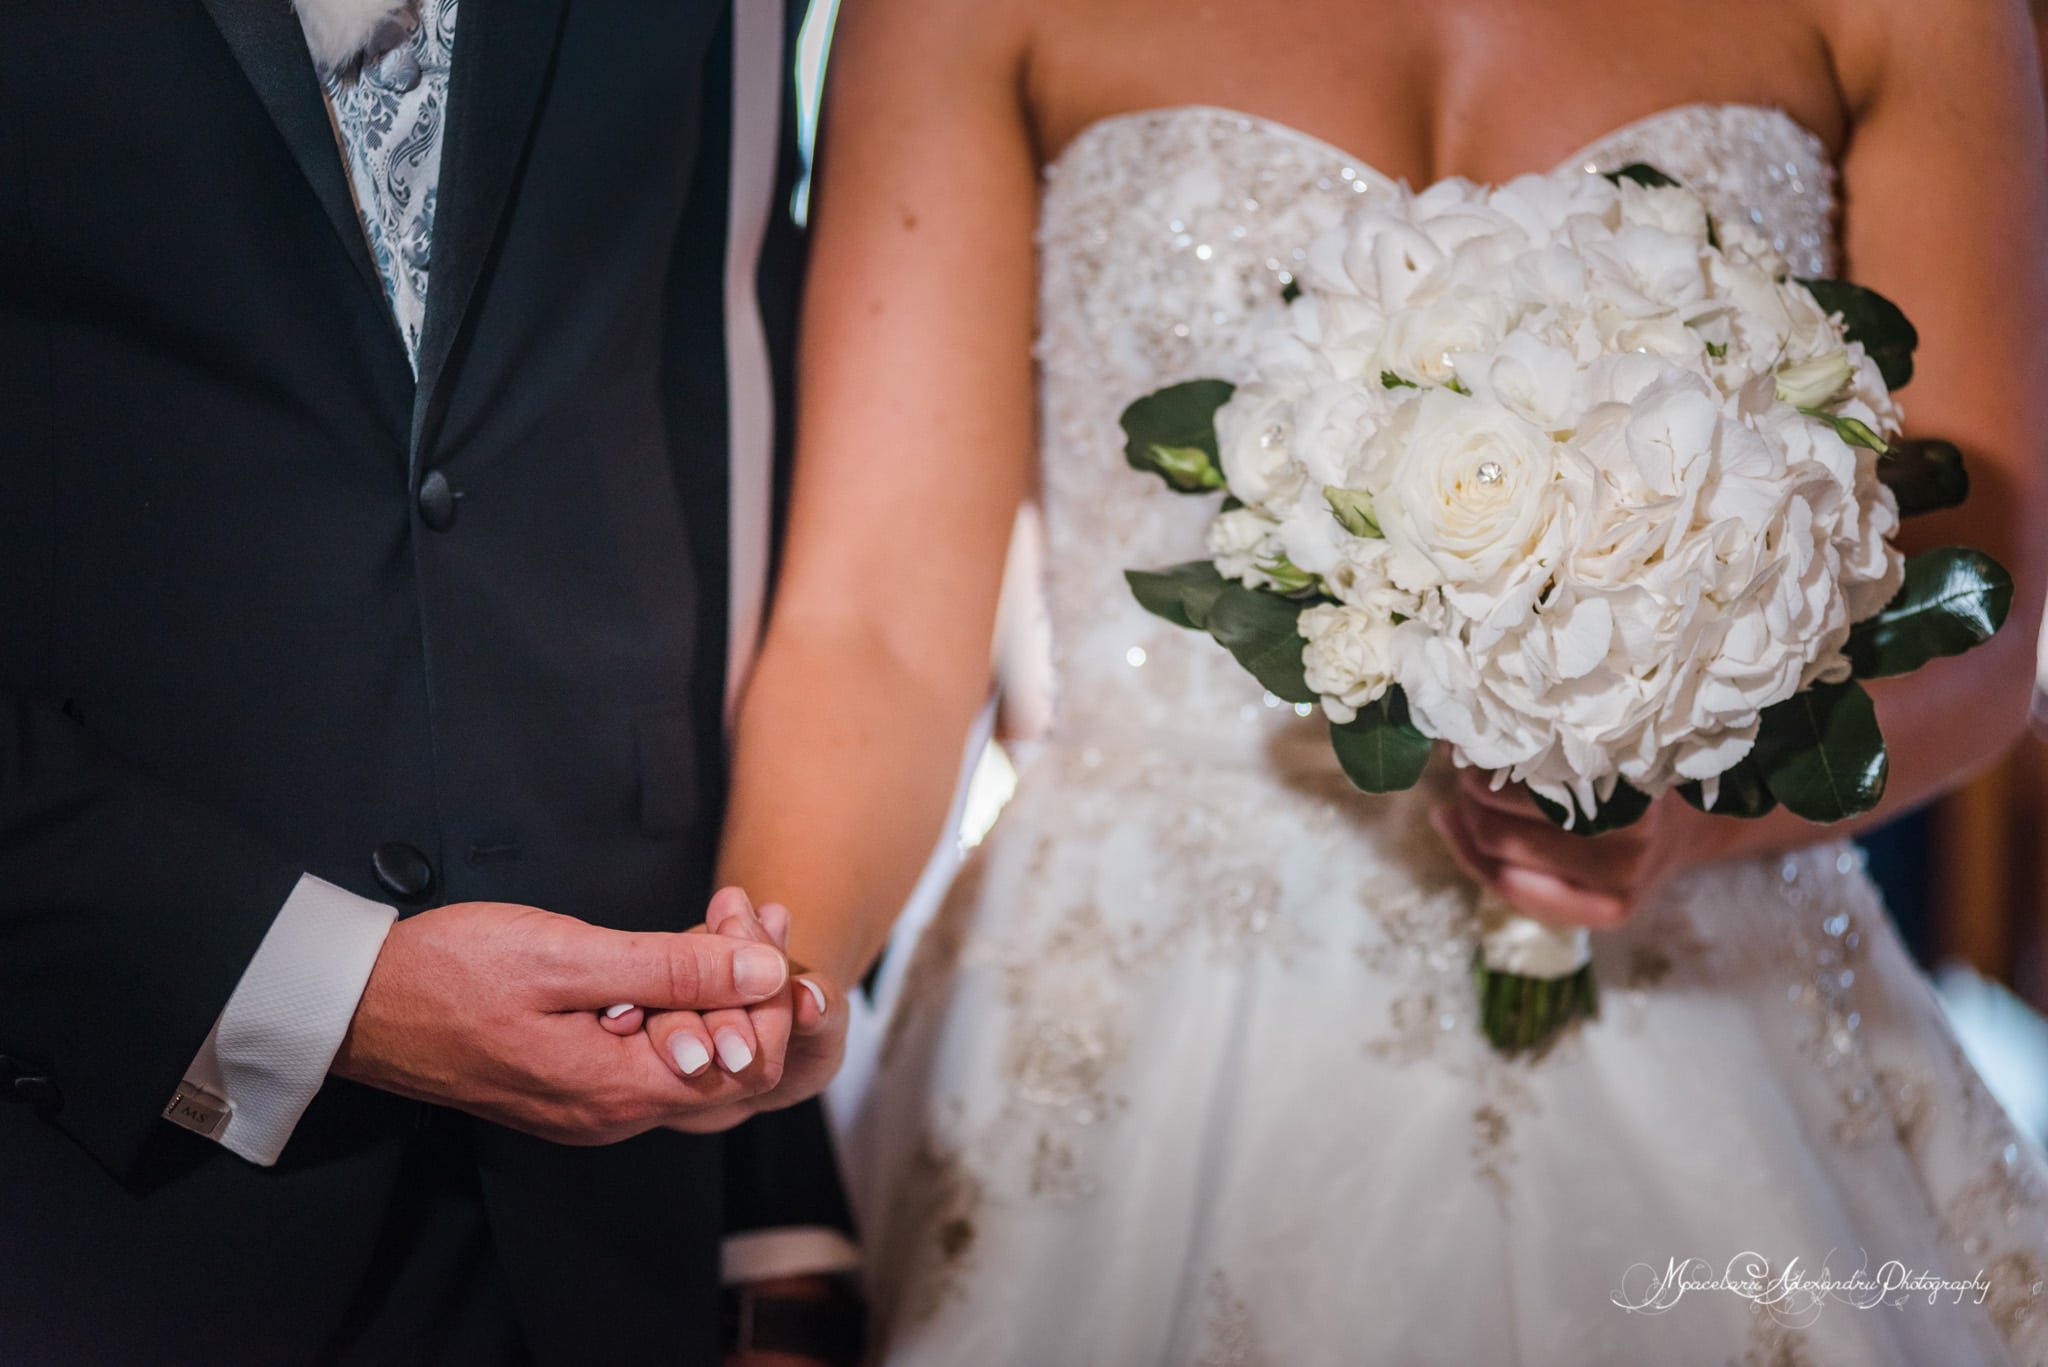 Wedding photography in Paphos - Bride and groom holding hands